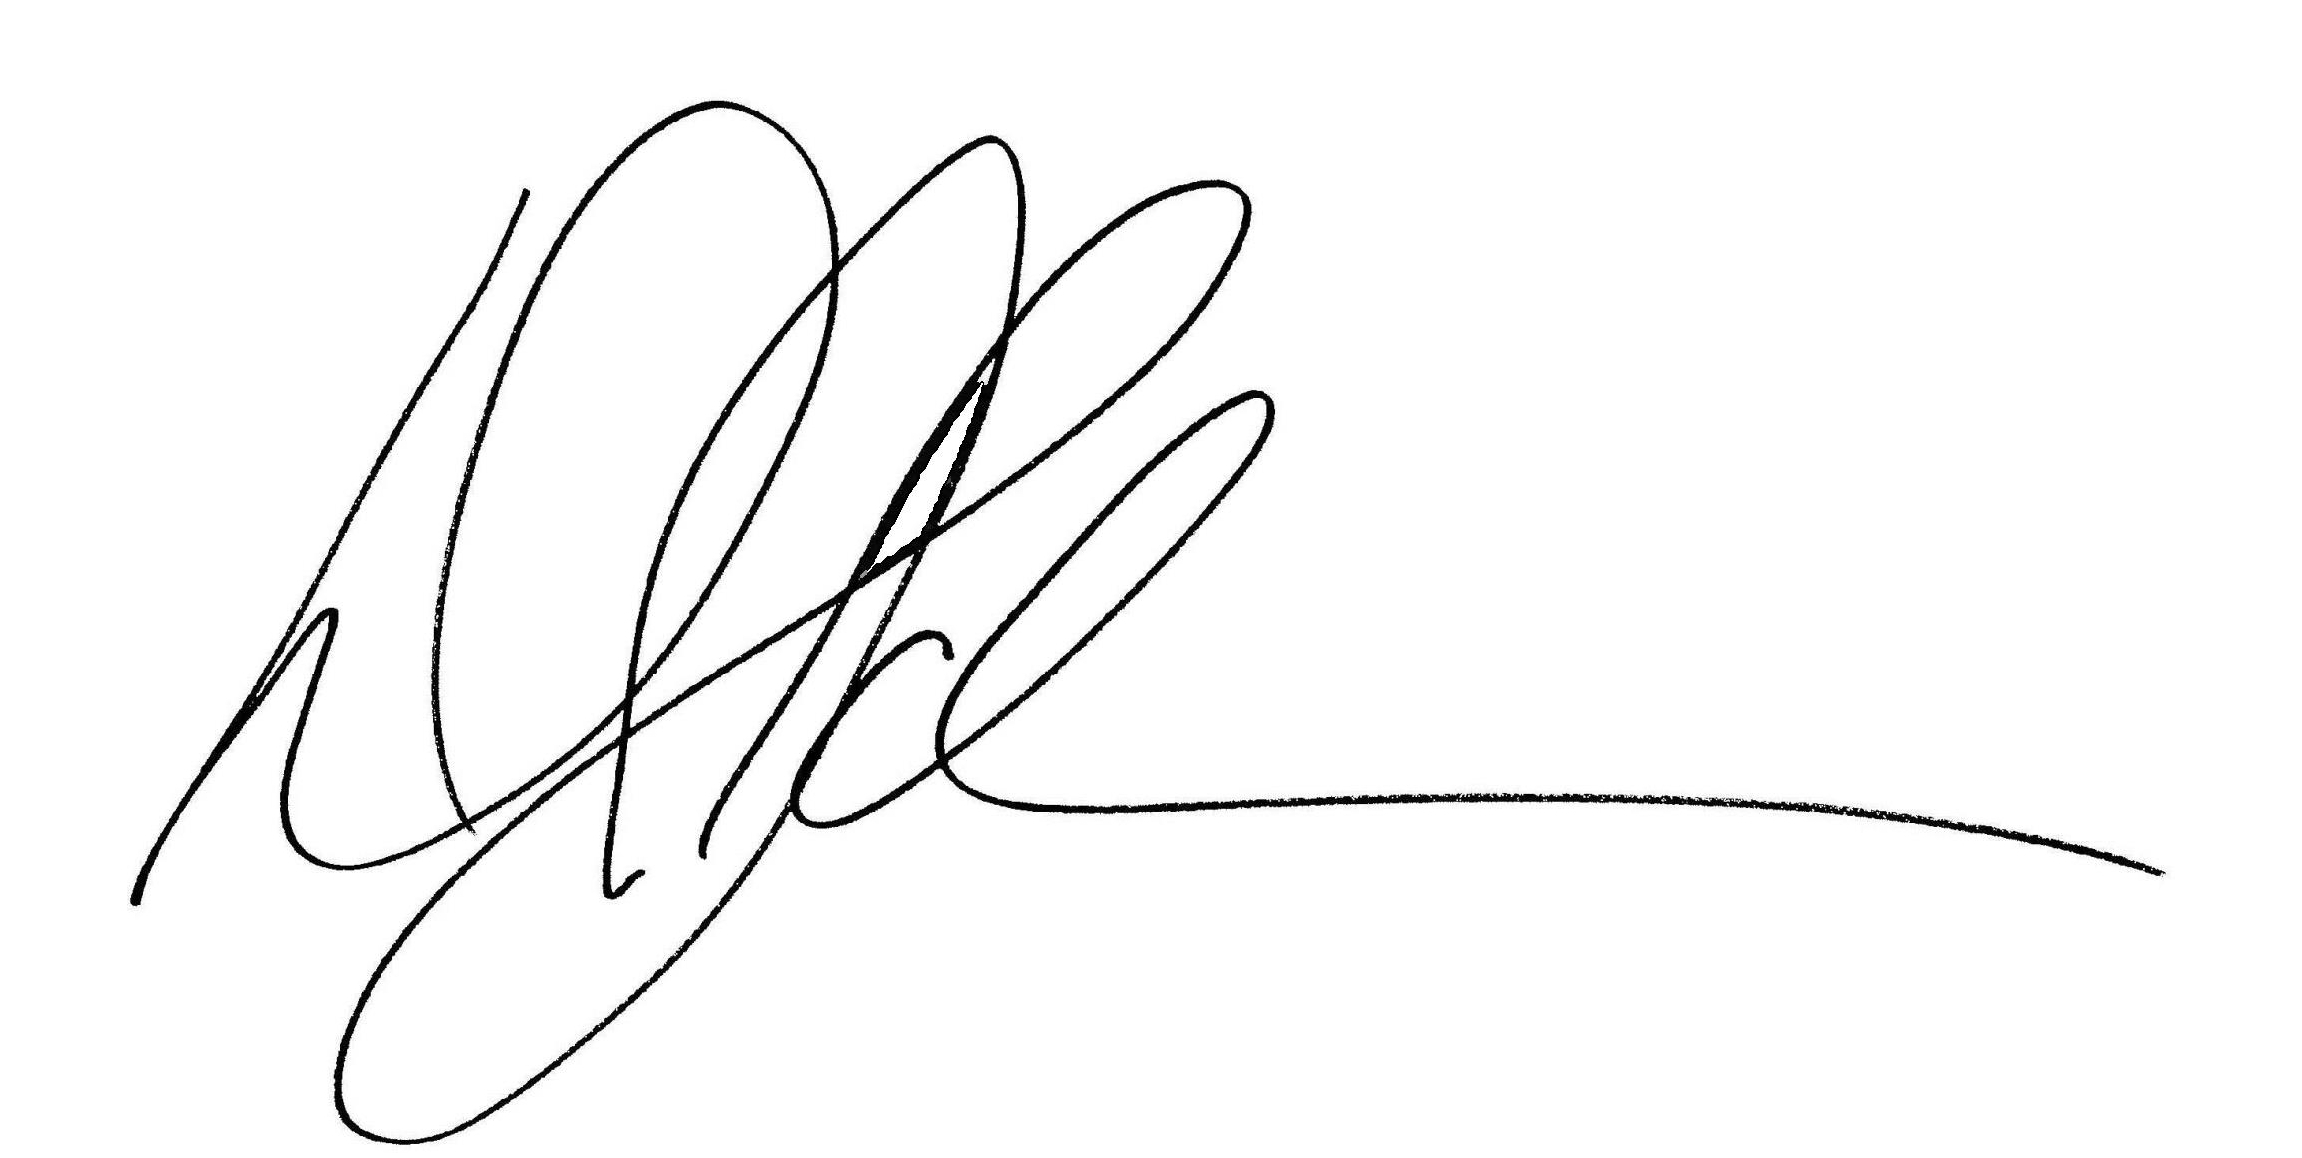 David Schmerer Signature